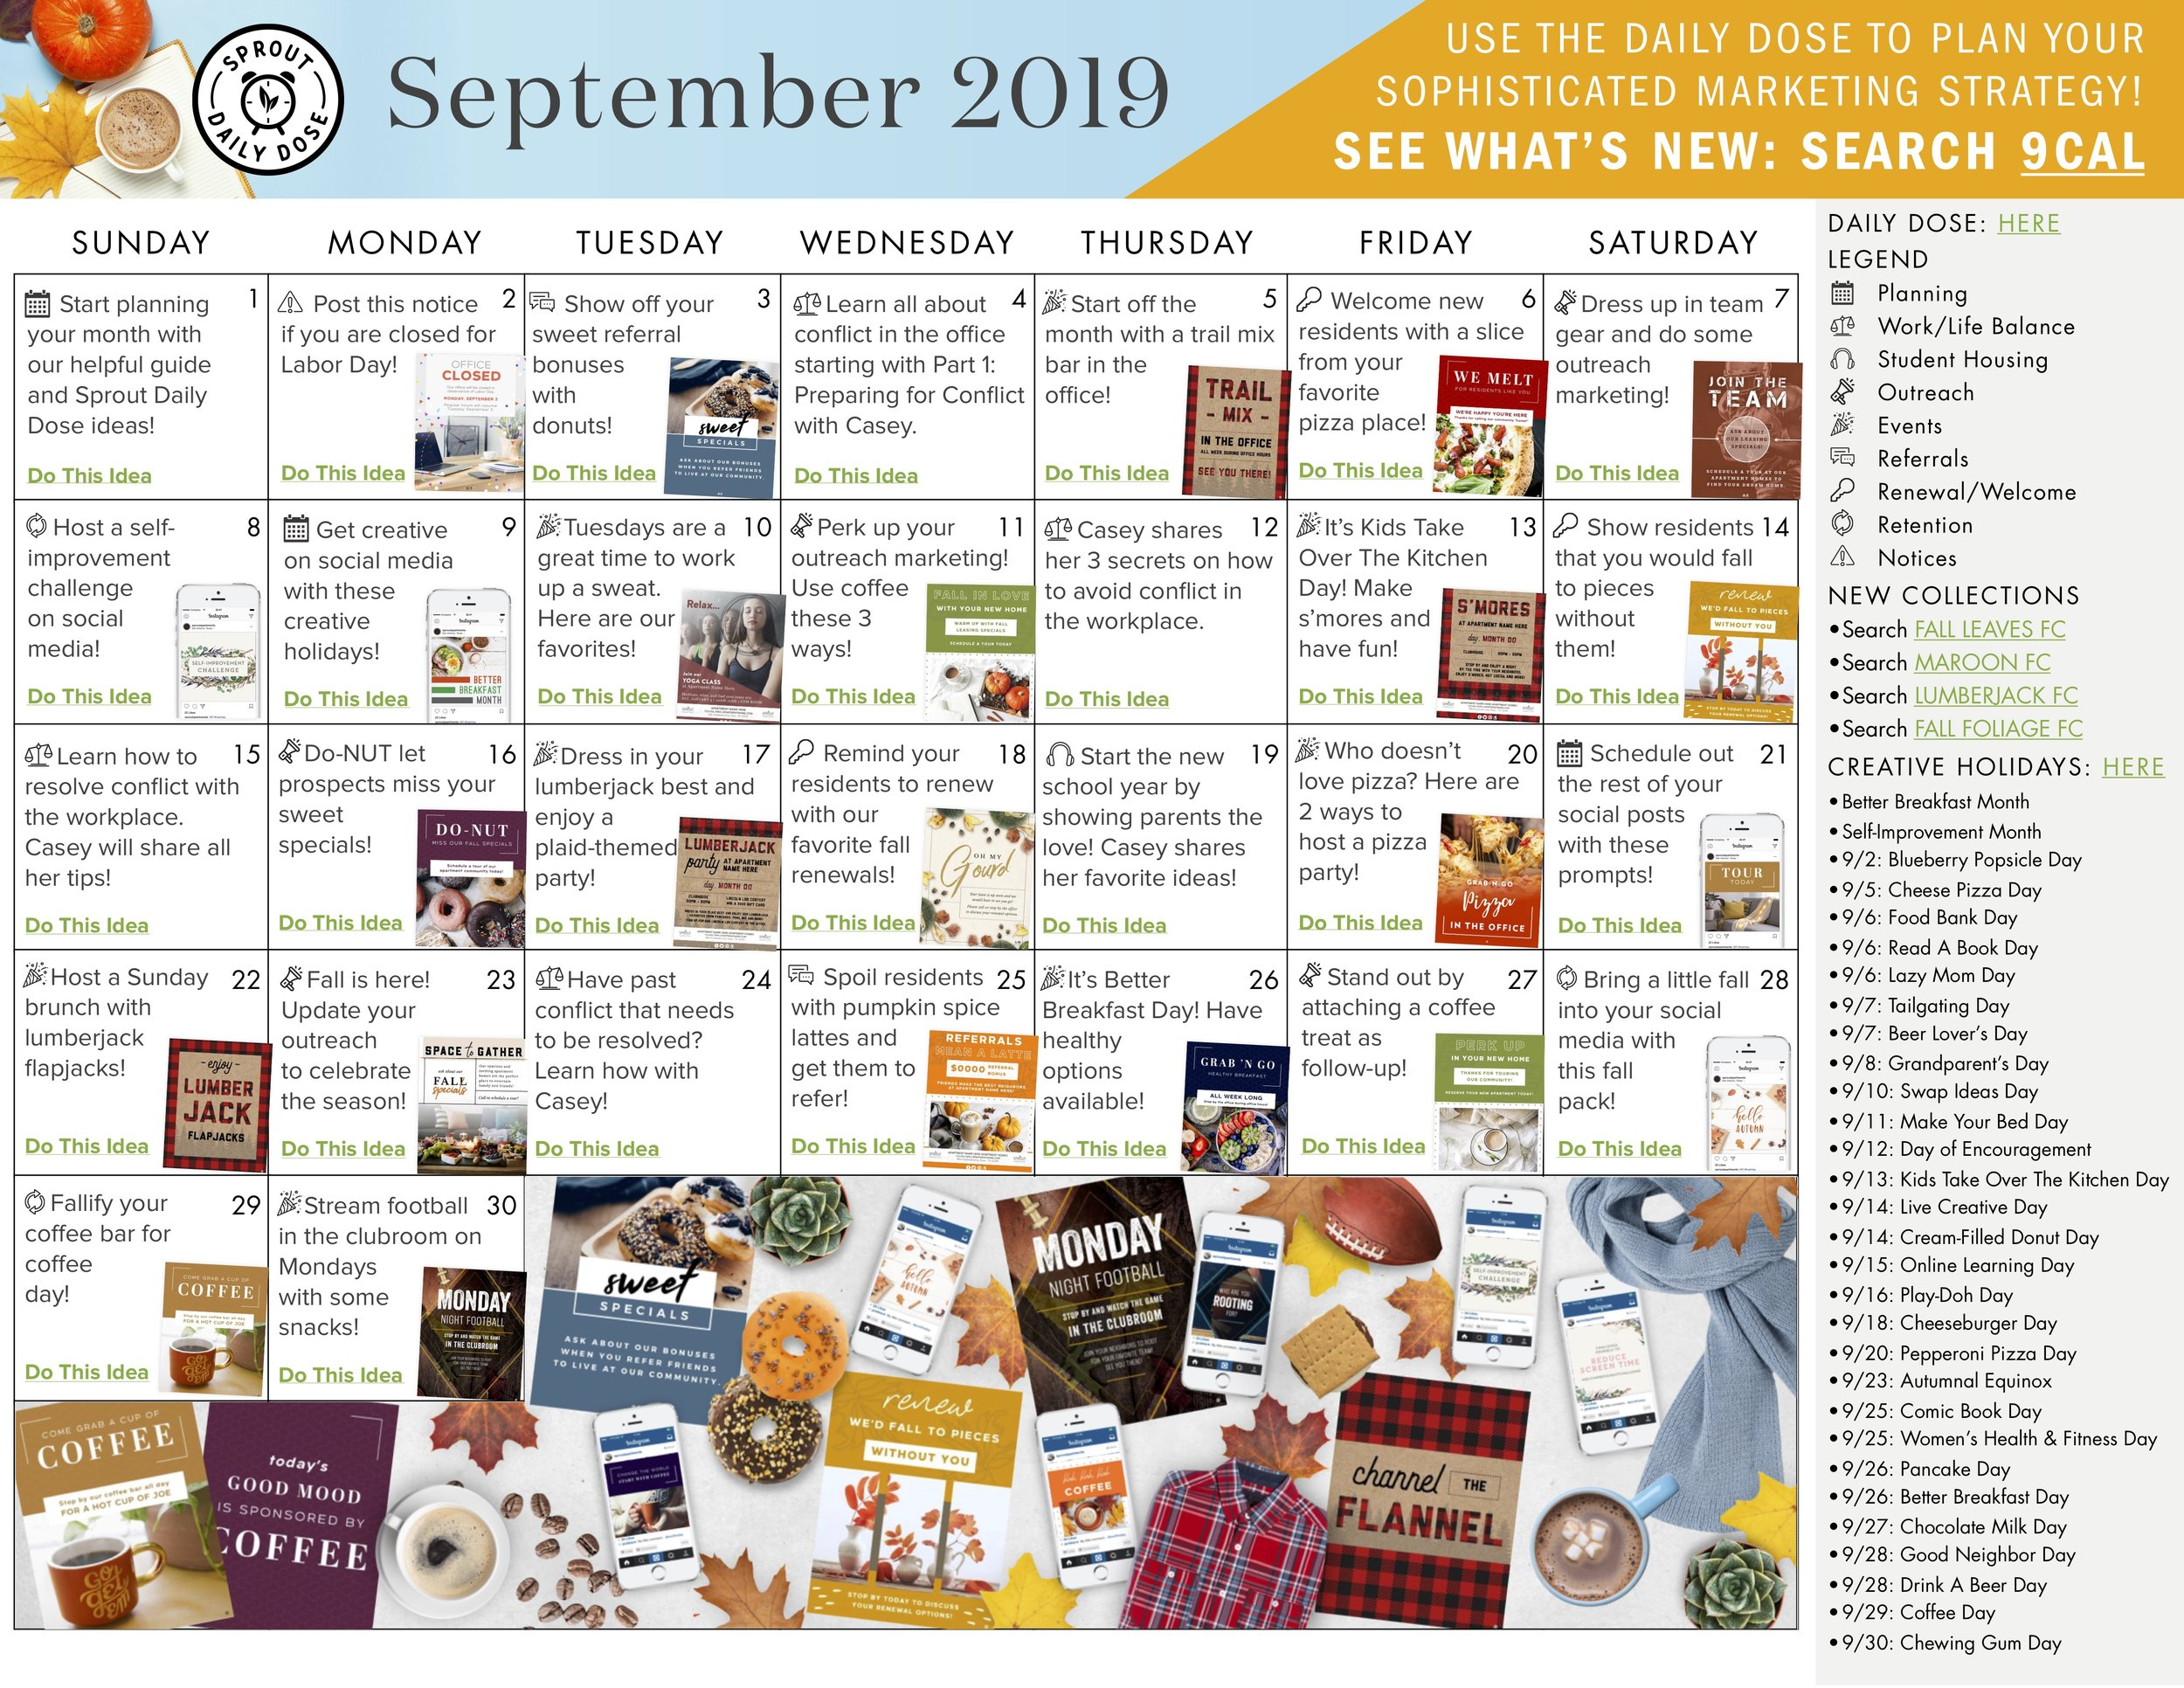 Grab the pre-populated Daily Dose calendar here